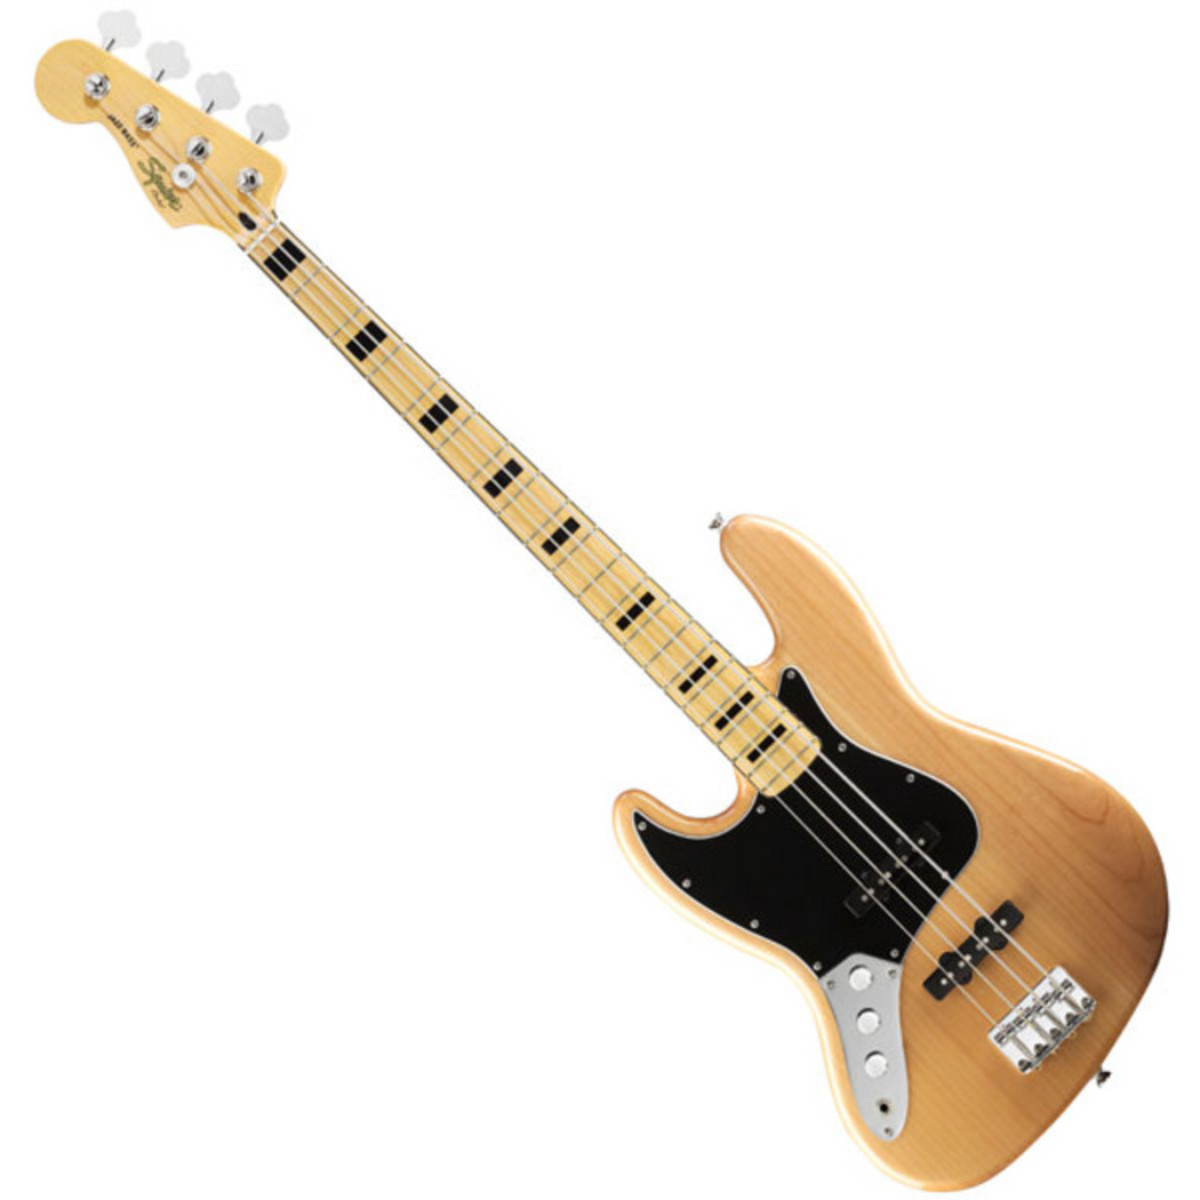 squier by fender vintage modified 70s jazz bass left handed natural at gear4music. Black Bedroom Furniture Sets. Home Design Ideas